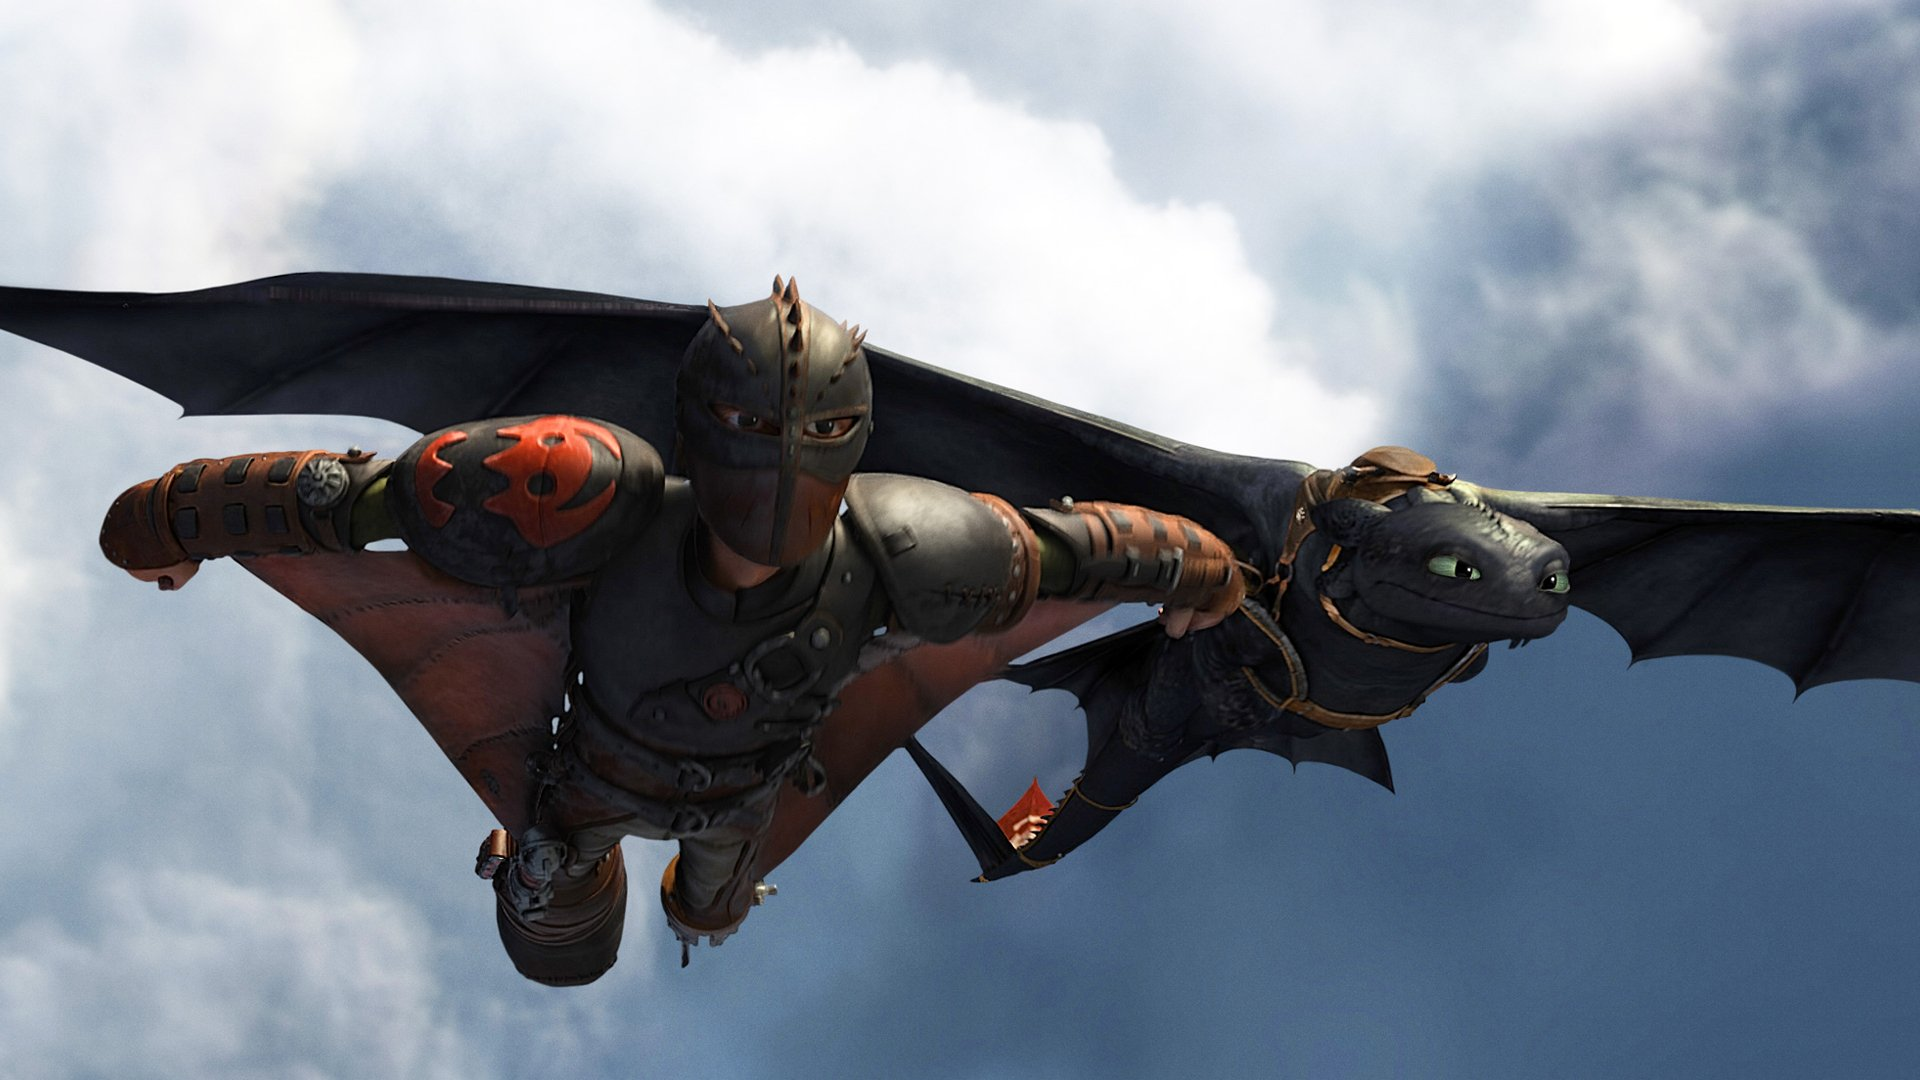 hiccup and toothless night fury flying in how to train your dragon 2 1920x1080